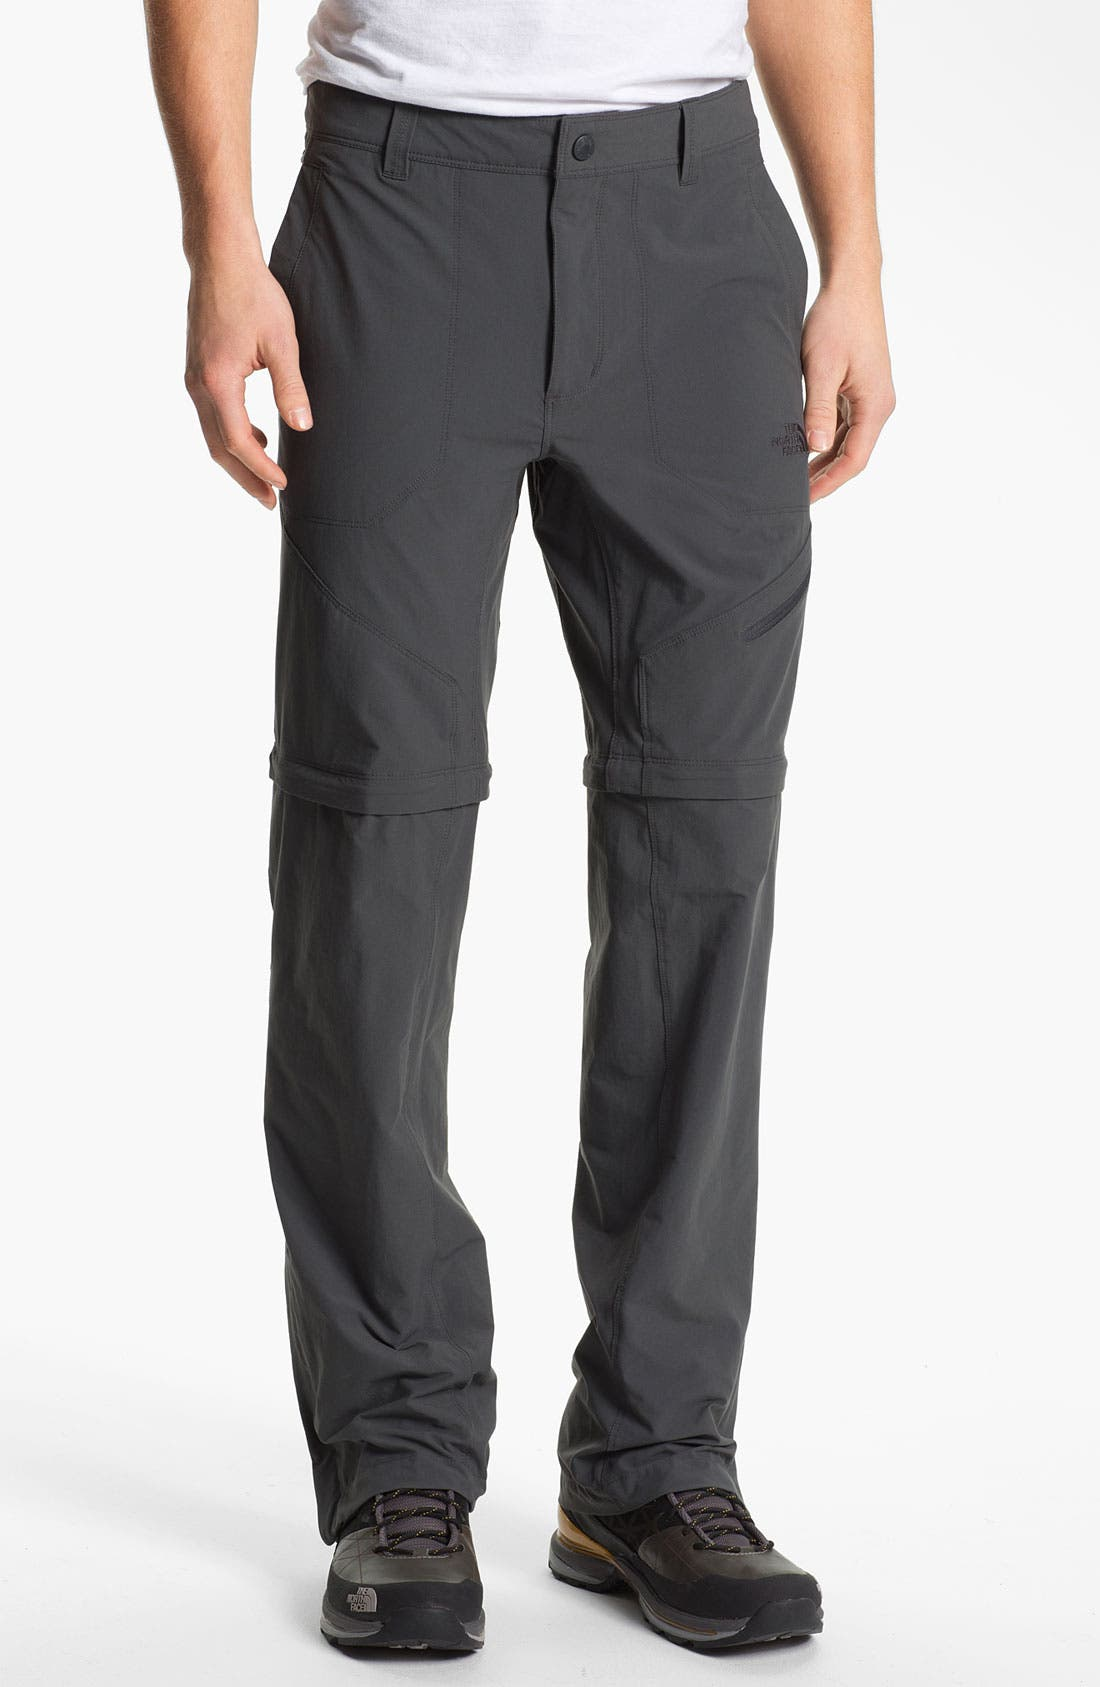 Alternate Image 1 Selected - The North Face 'Taggart' Convertible Pants